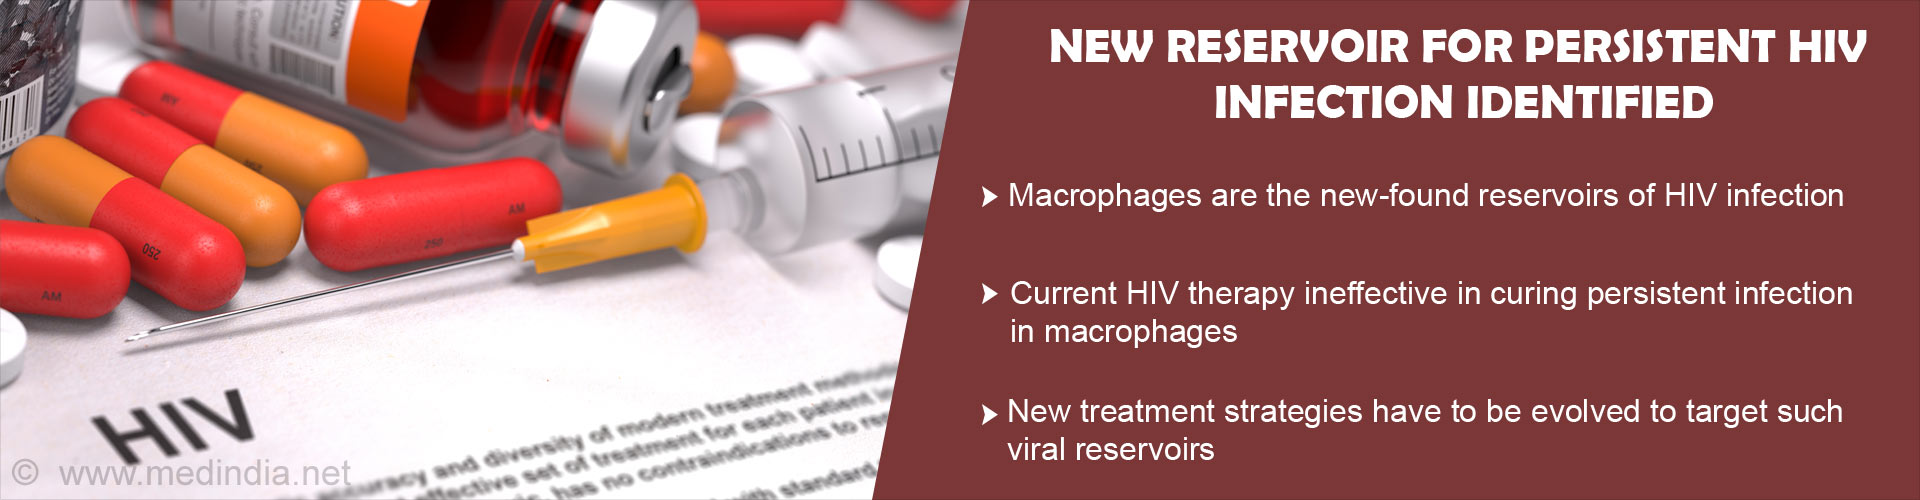 New Reservoir for persistent HIV infection identified - Macrophages are the new-found reservoirs of HIV infection - Current HIV therapy ineffective in curing persistent infection in macrophages - New treatment strategies have to be evolved to target such viral reservoirs